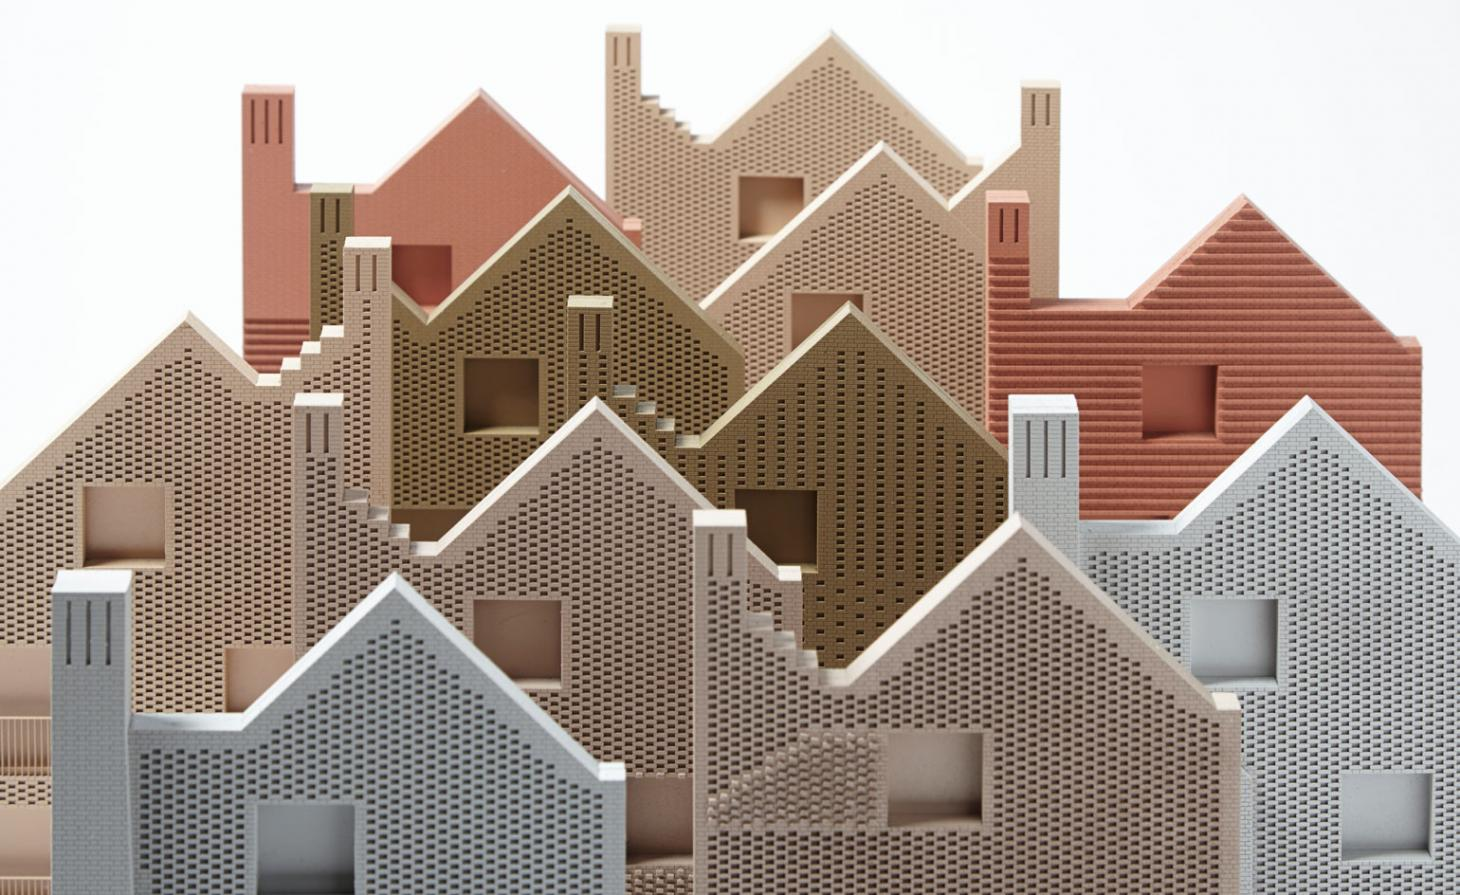 Morris + Company Sylvan Heritage models are in muted hues